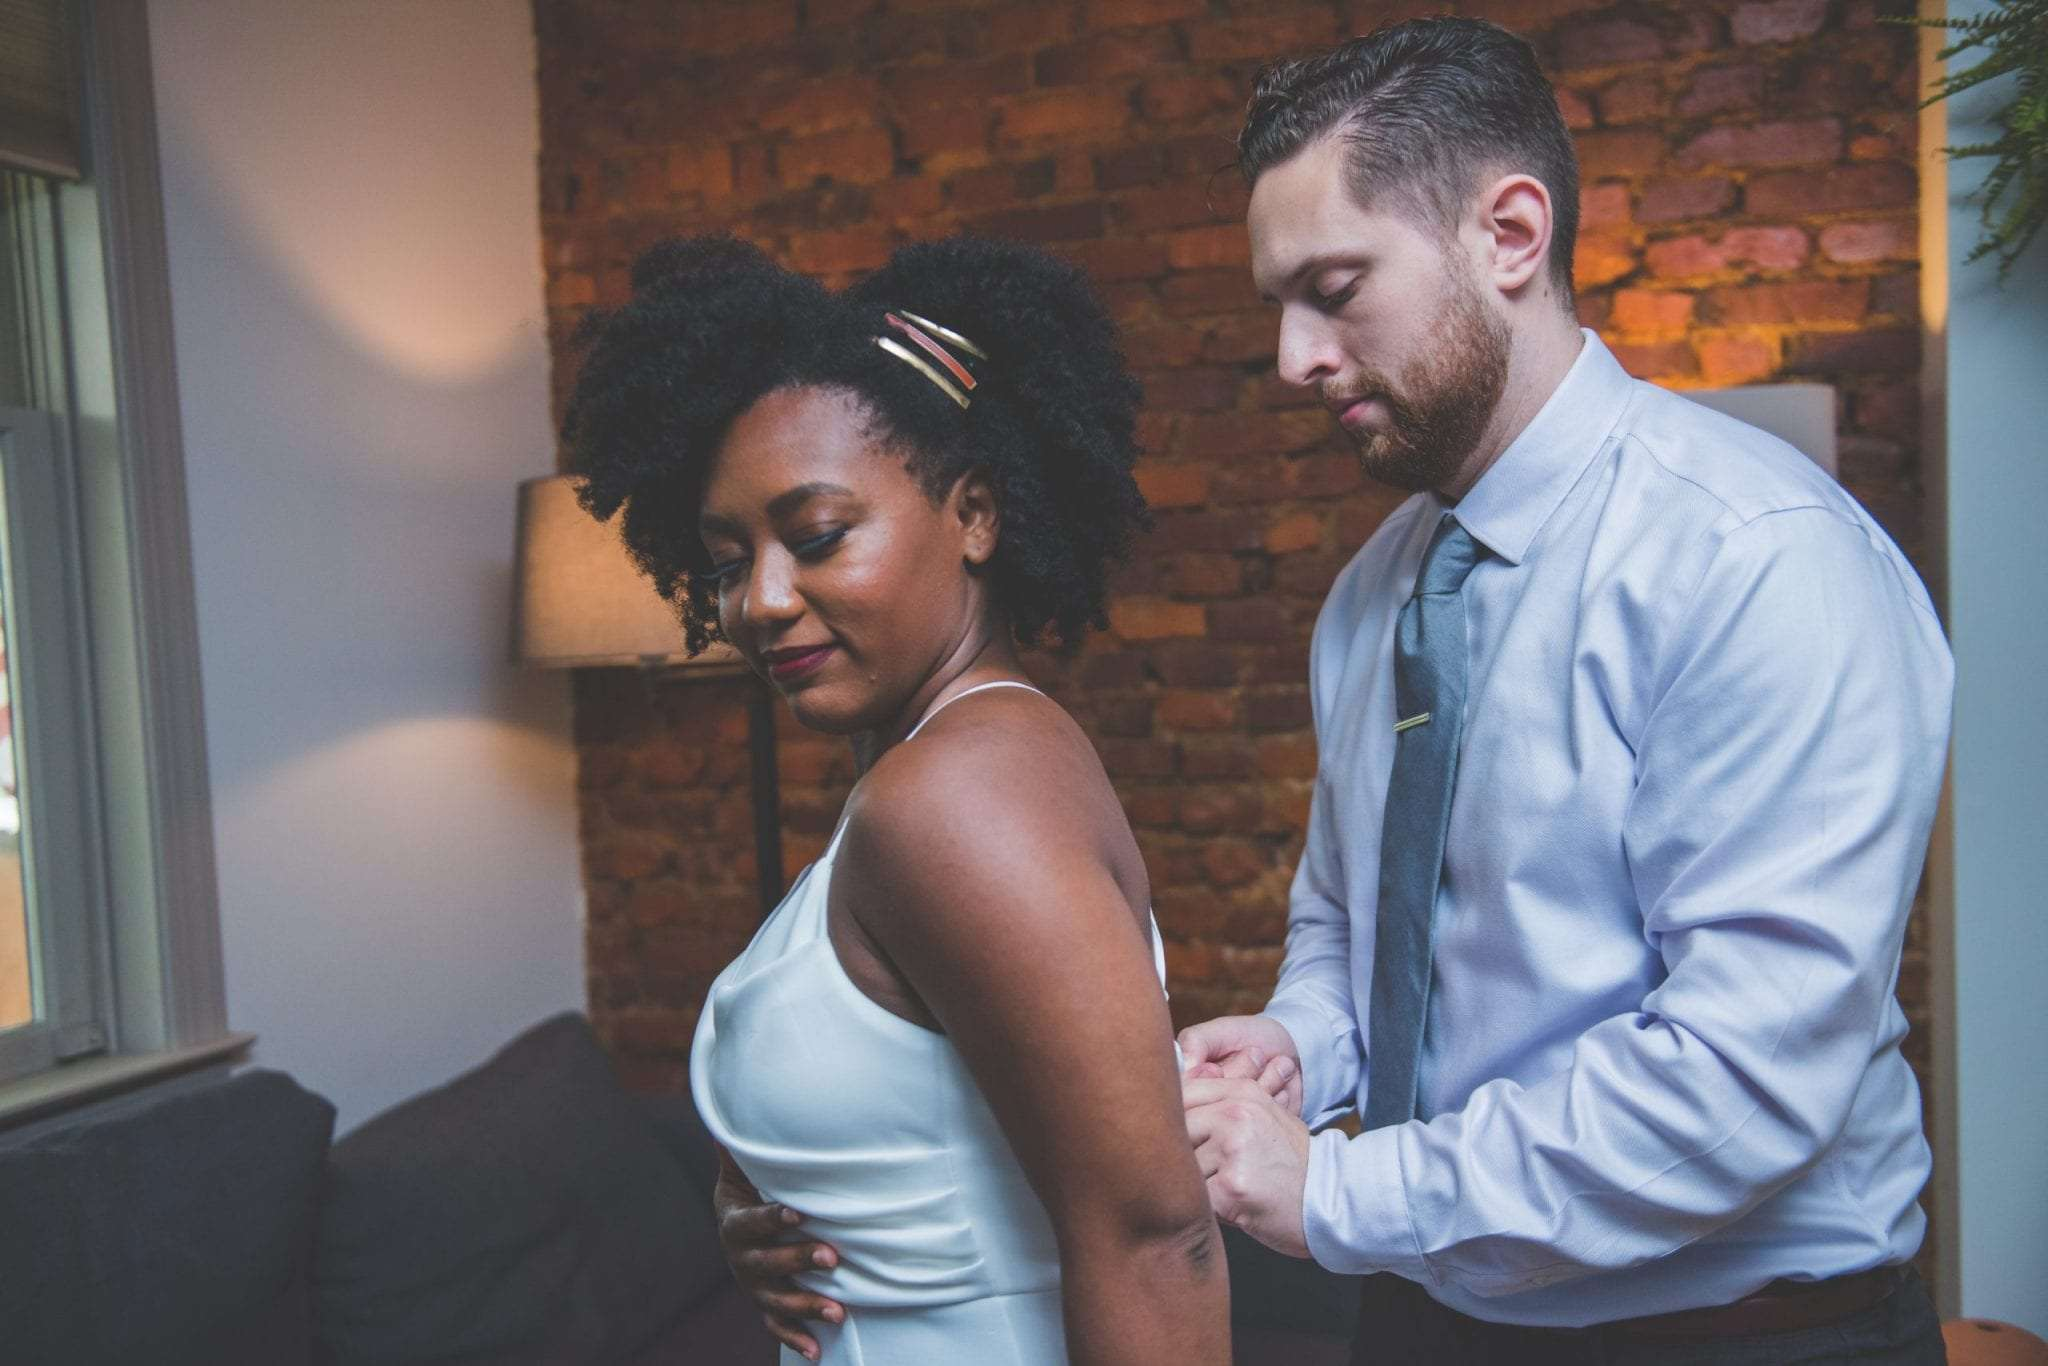 Groom helping bride get ready NJ wedding photographer